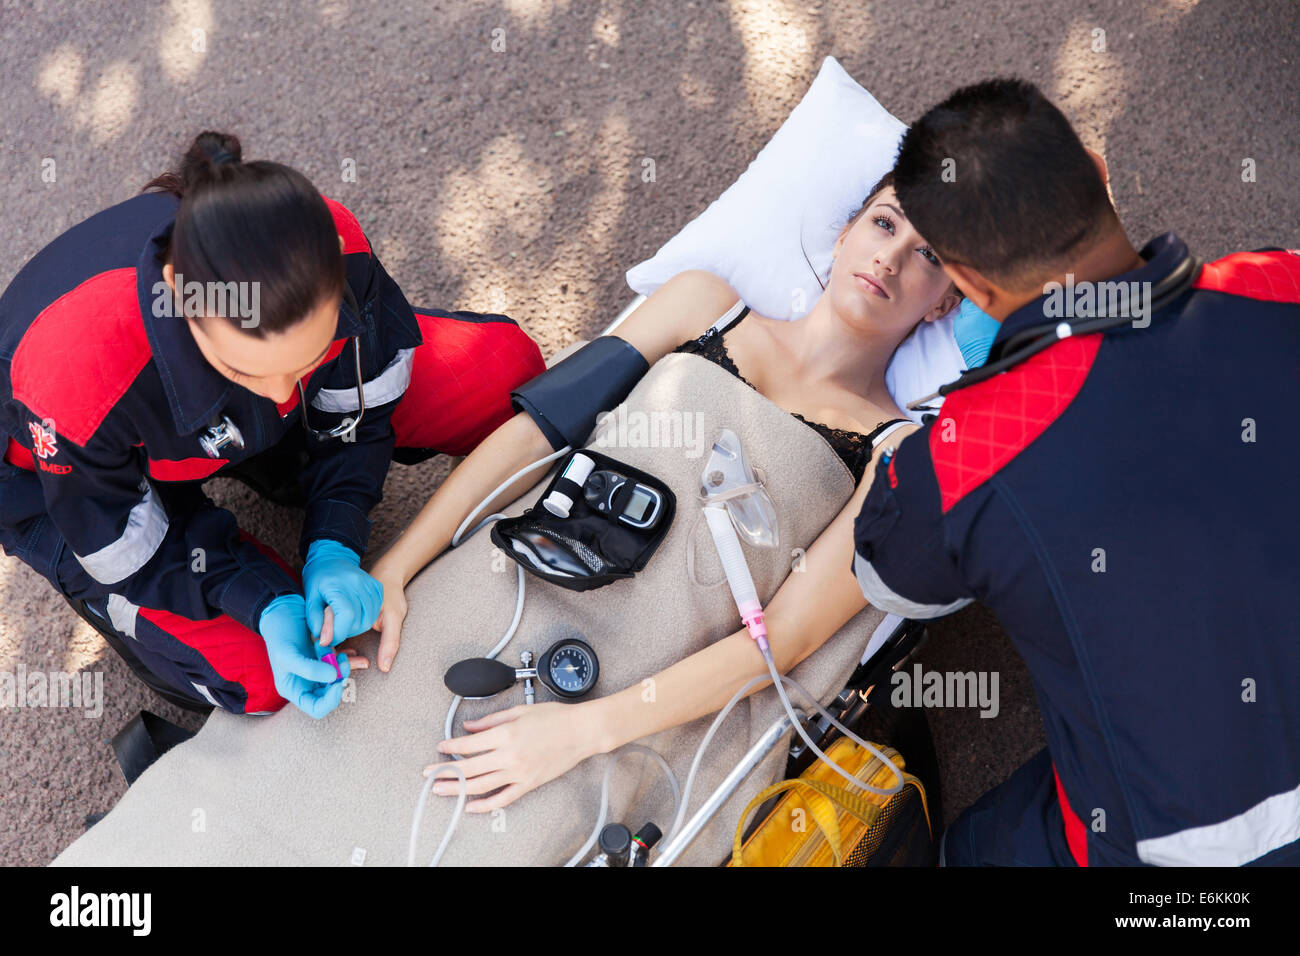 above view of paramedic team examining patient Stock Photo